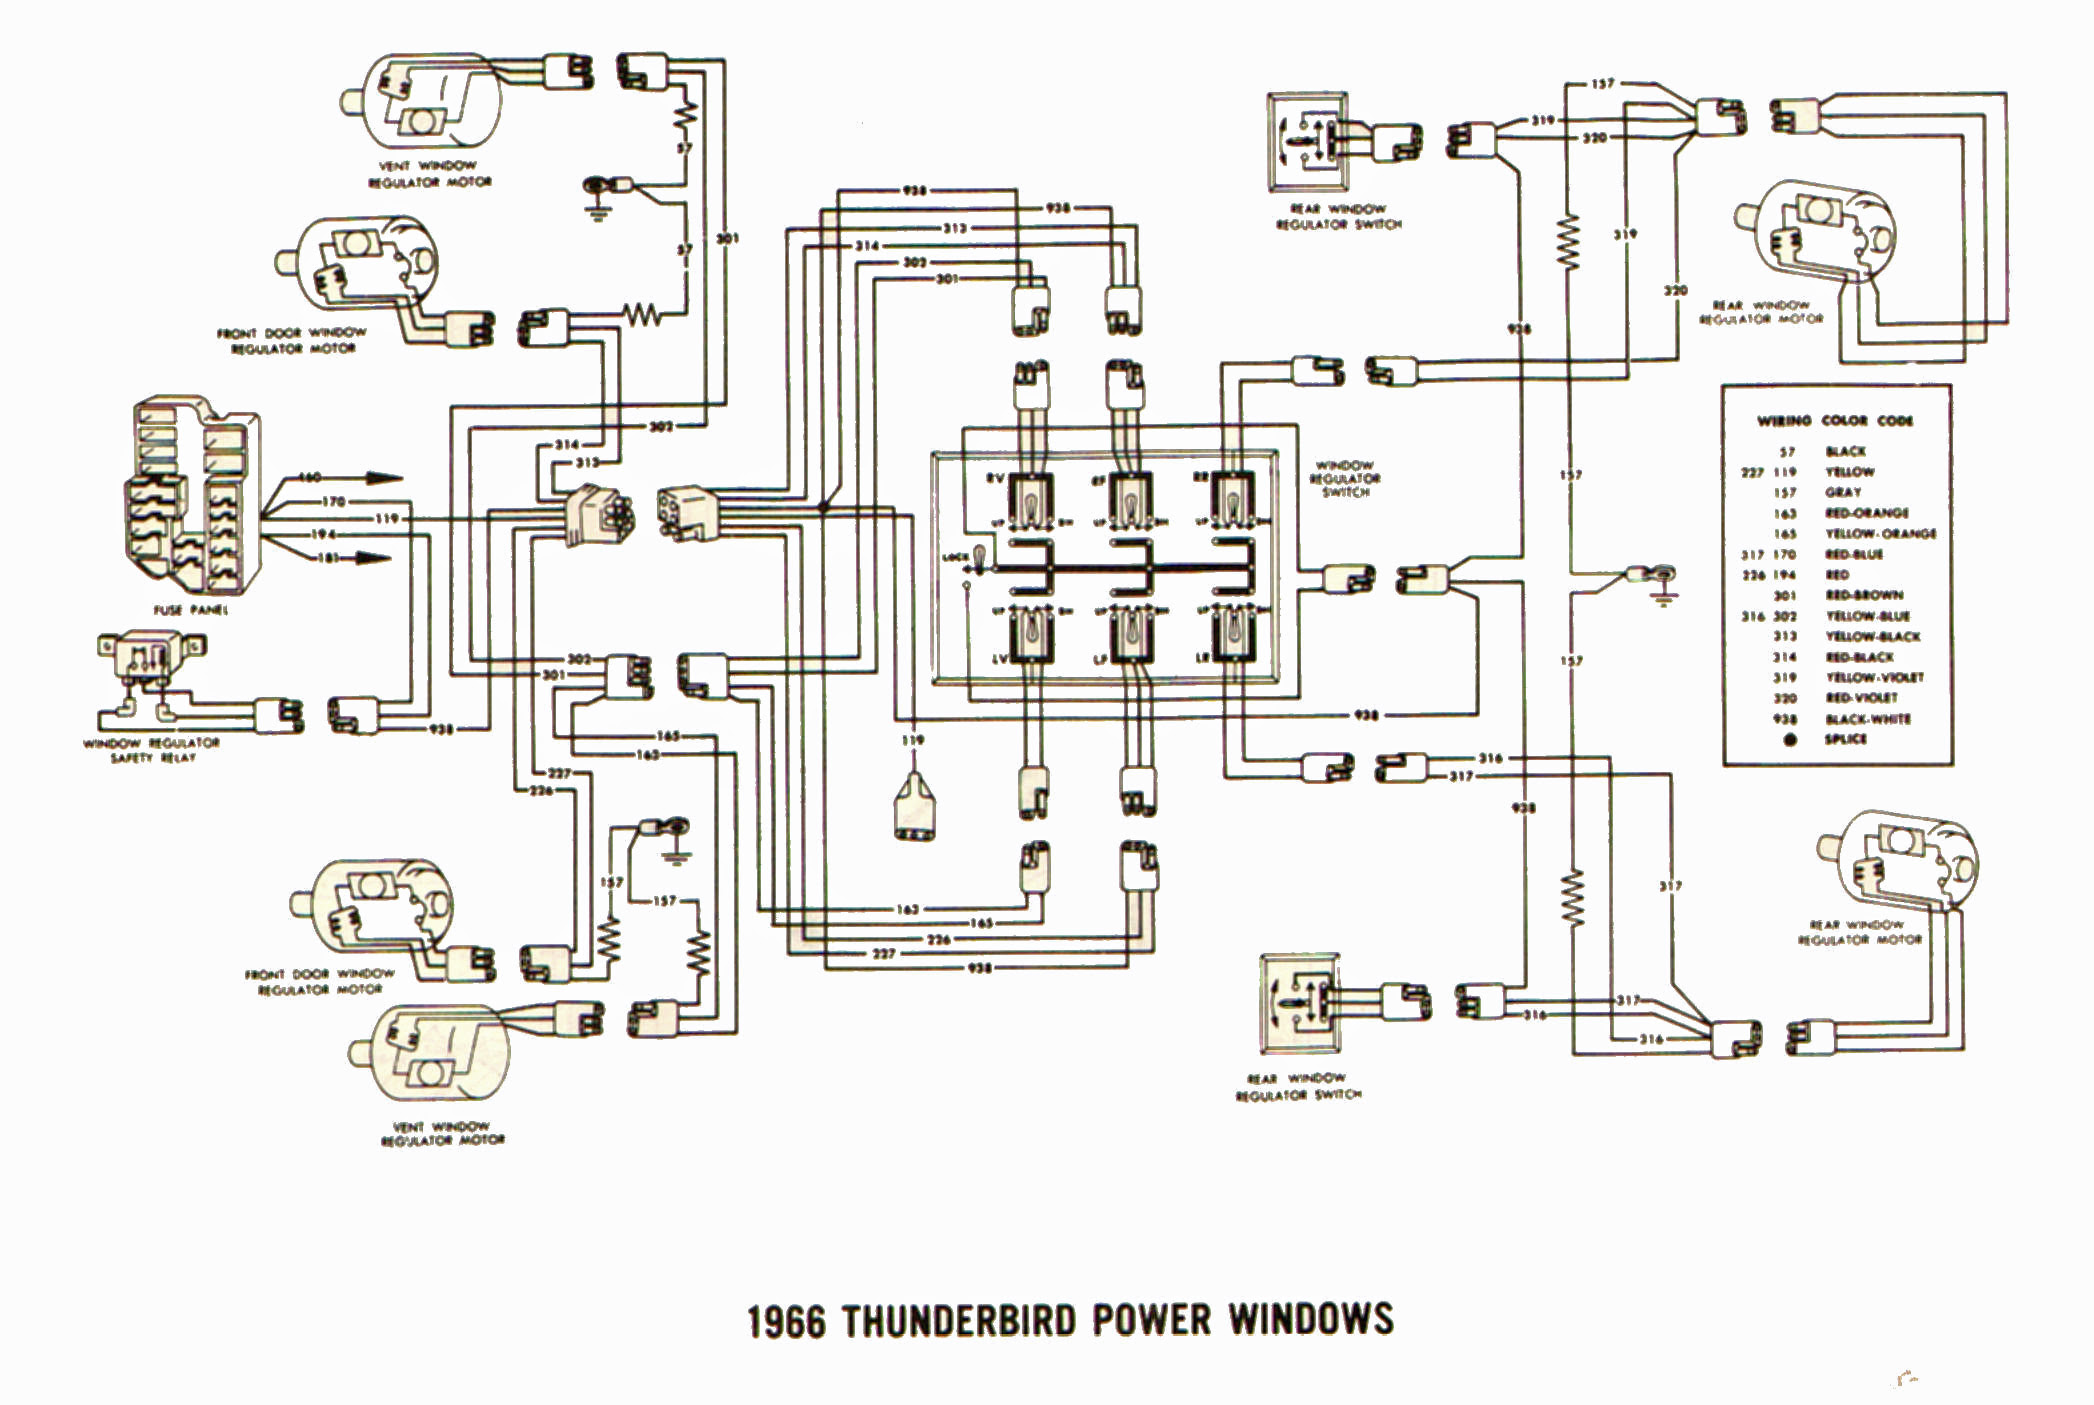 1966 Ford Thunderbird Convertible Top Wiring Diagram Wiring Diagram Academic Academic Lastanzadeltempo It